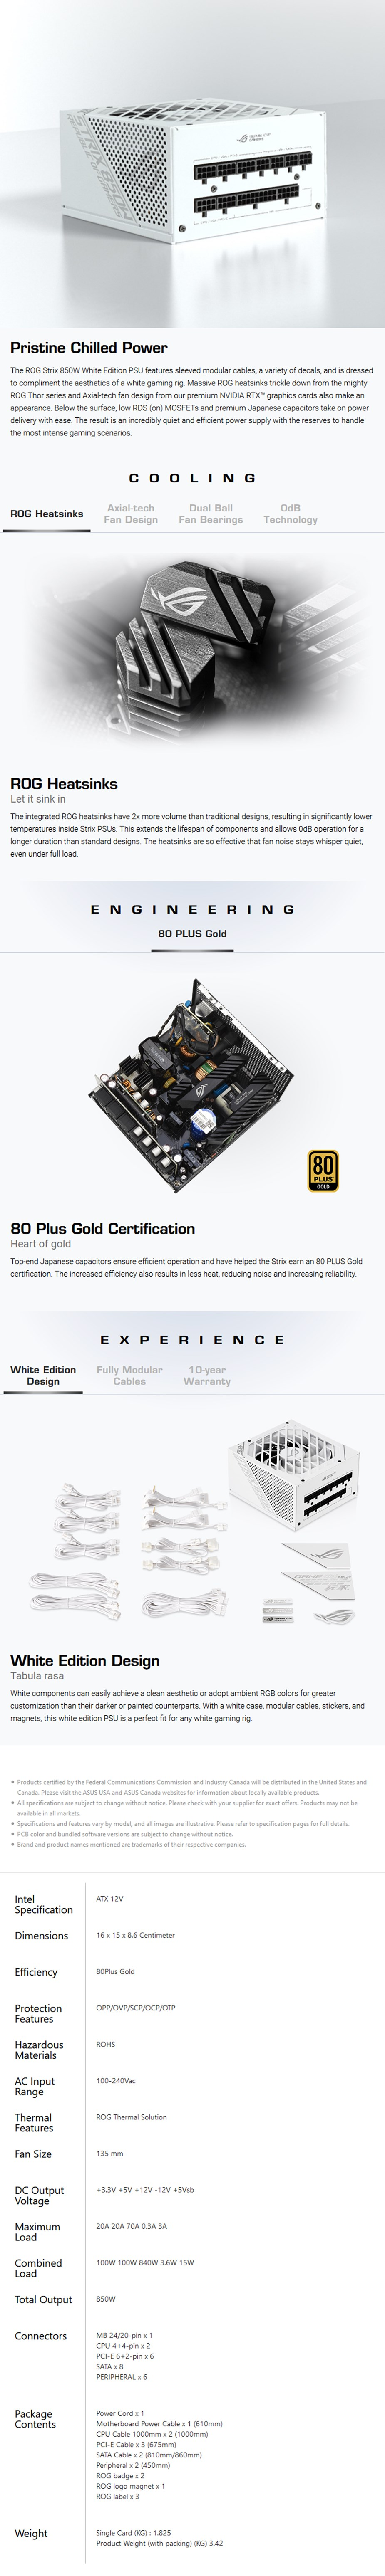 ASUS ROG Strix 850W 80+ Gold Fully Modular Power Supply - White - Overview 1